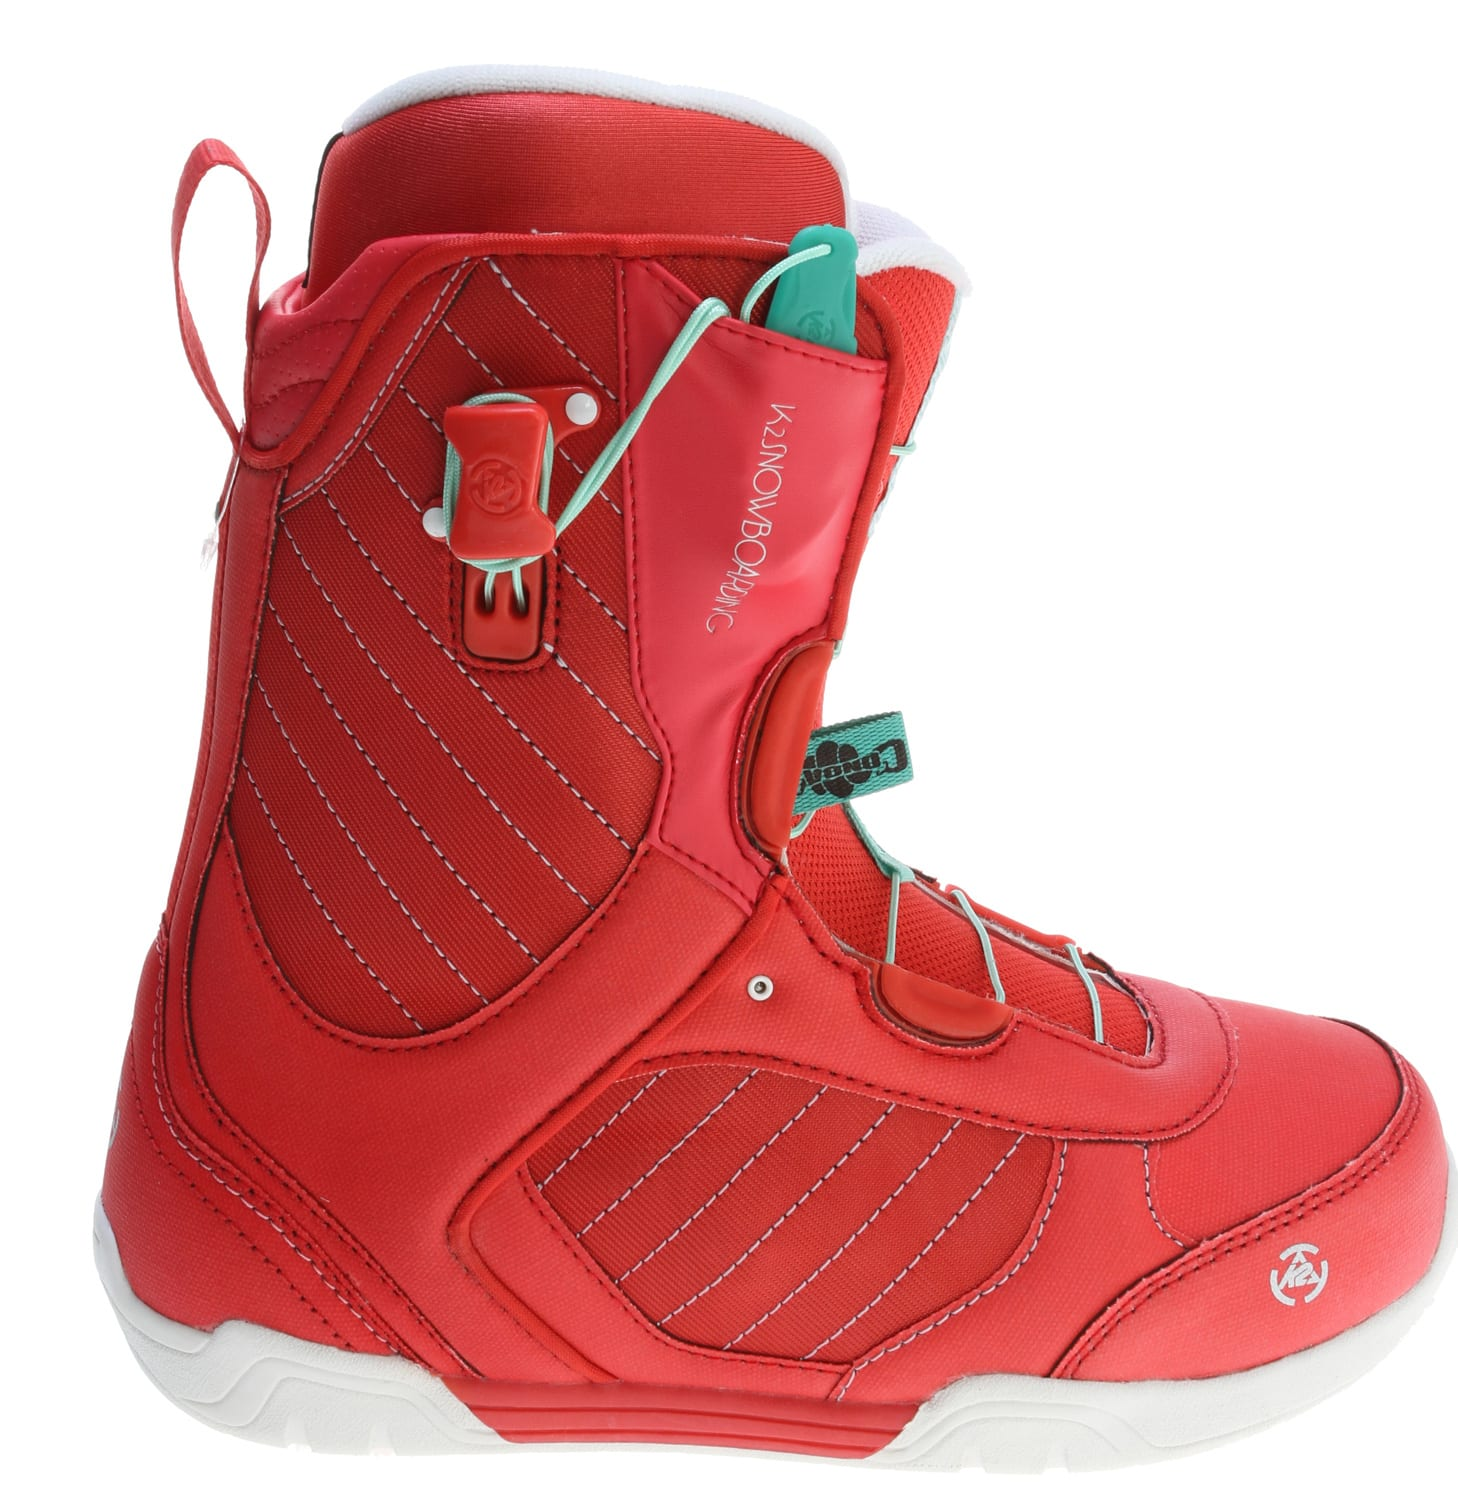 Shop for K2 Scene Snowboard Boots Juicy - Women's